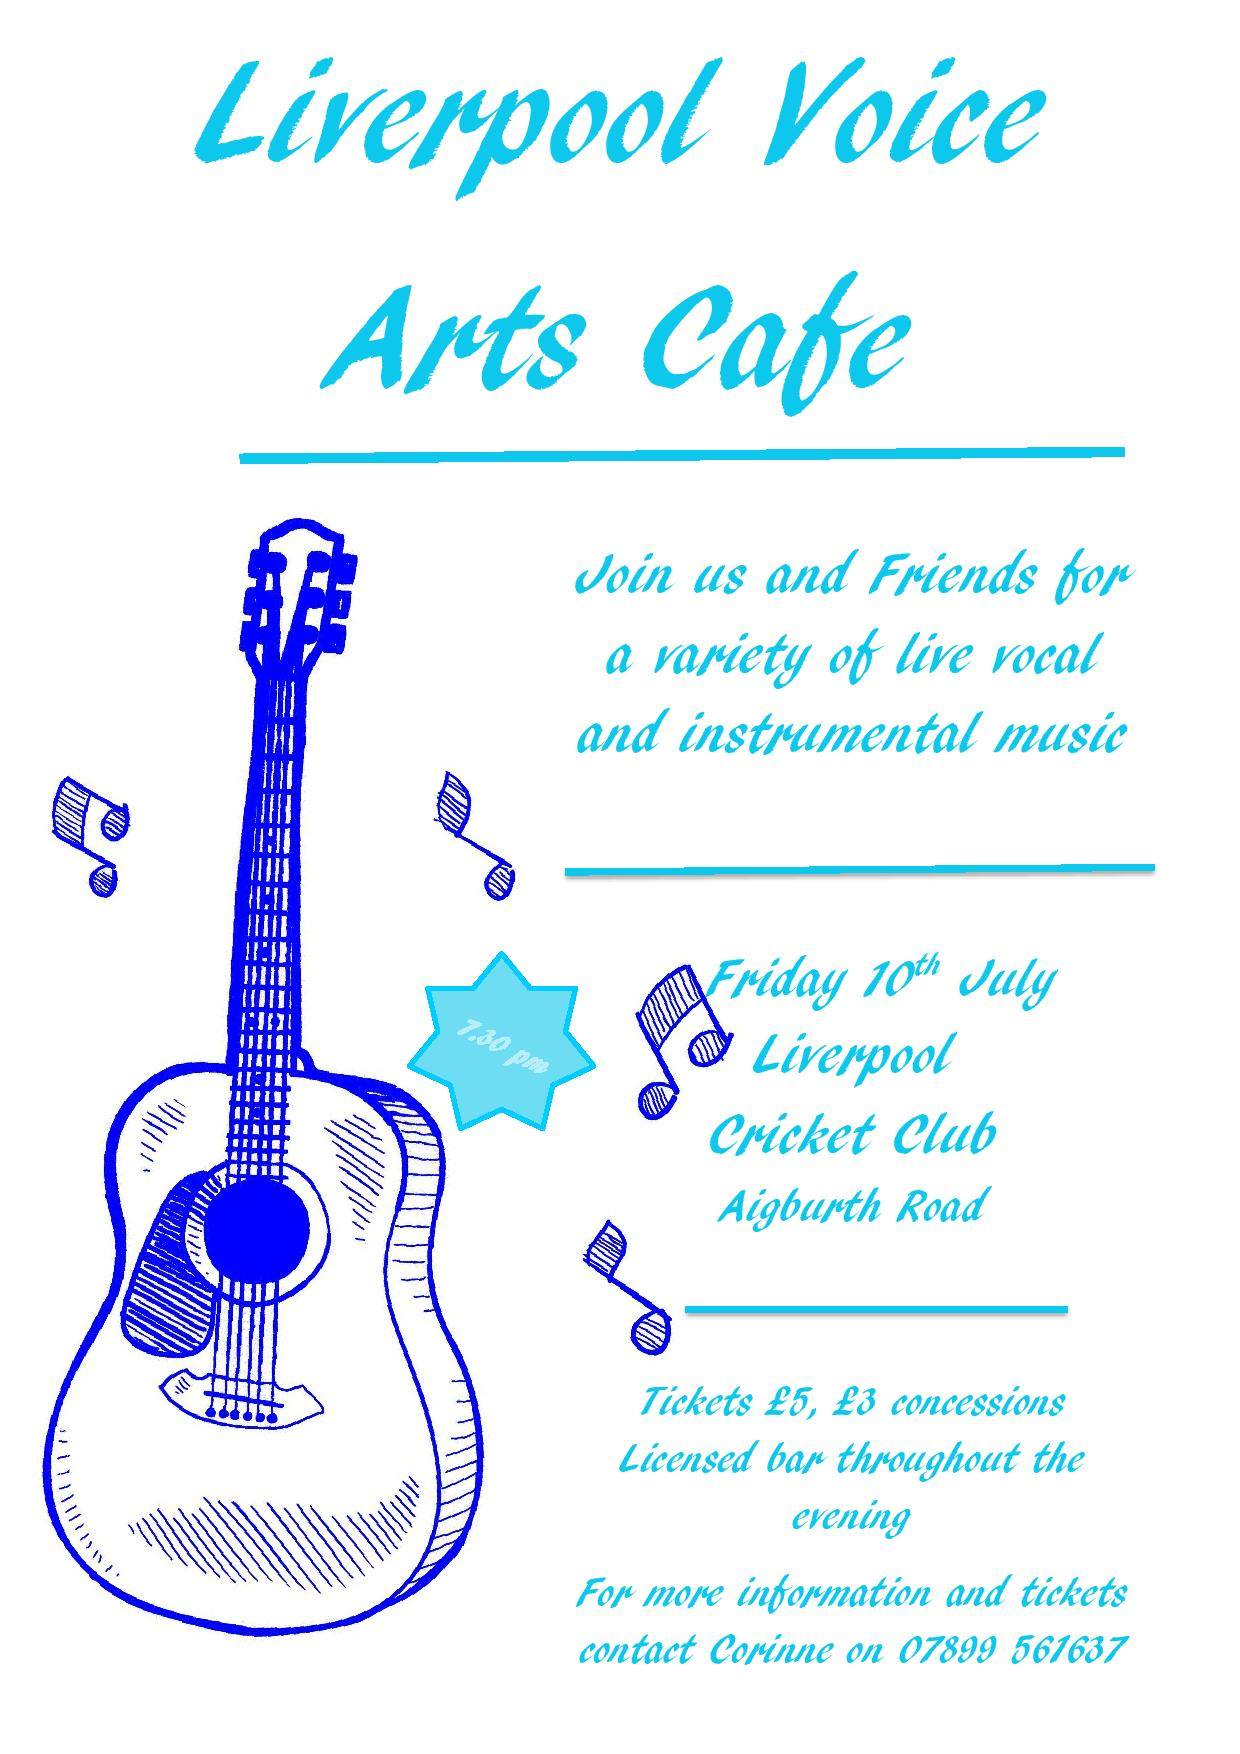 Liverpool Voice Arts Cafe poster by Corinne